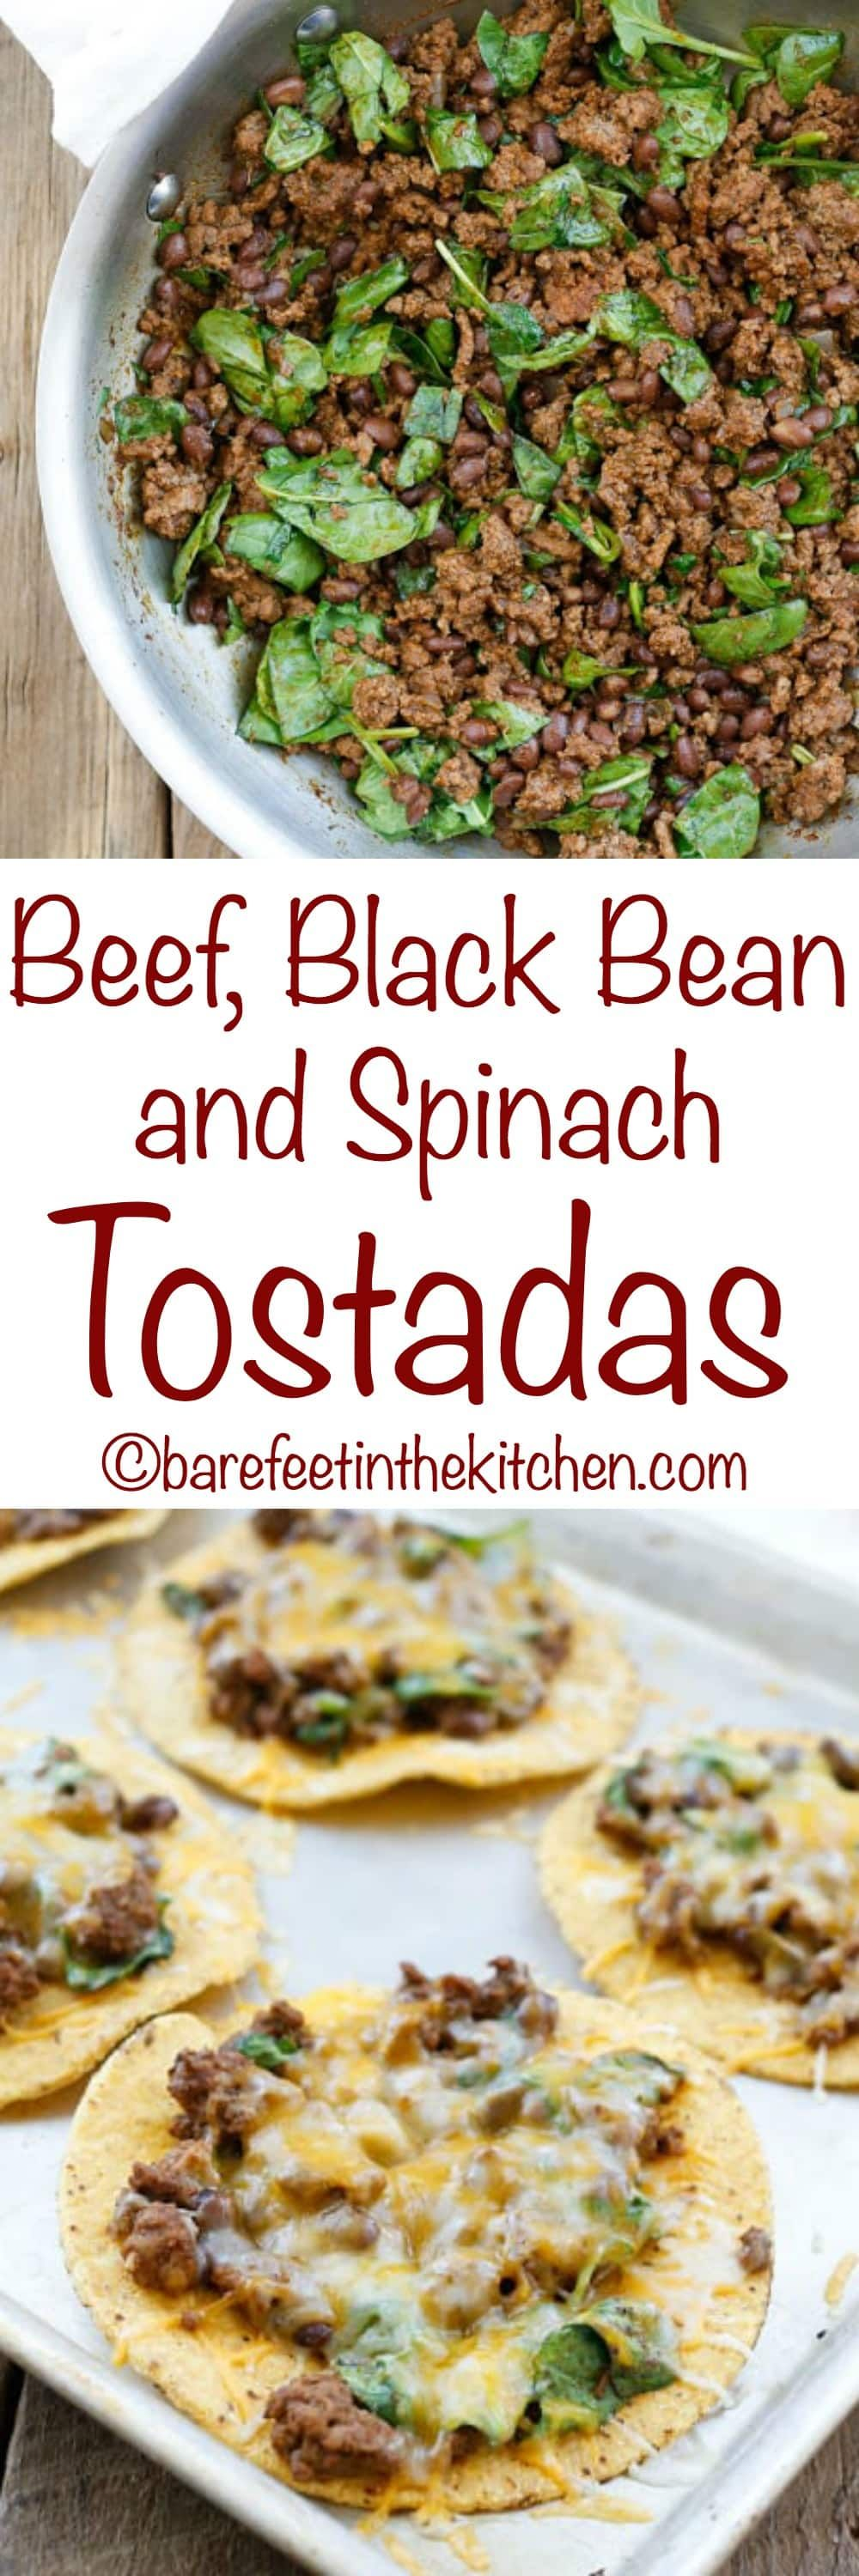 Beef Black Bean And Spinach Tostadas Are A Lightning Fast Dinner That Everyone Loves Get The Recipe At Barefeetinthekitche Mexican Food Recipes Food Recipes